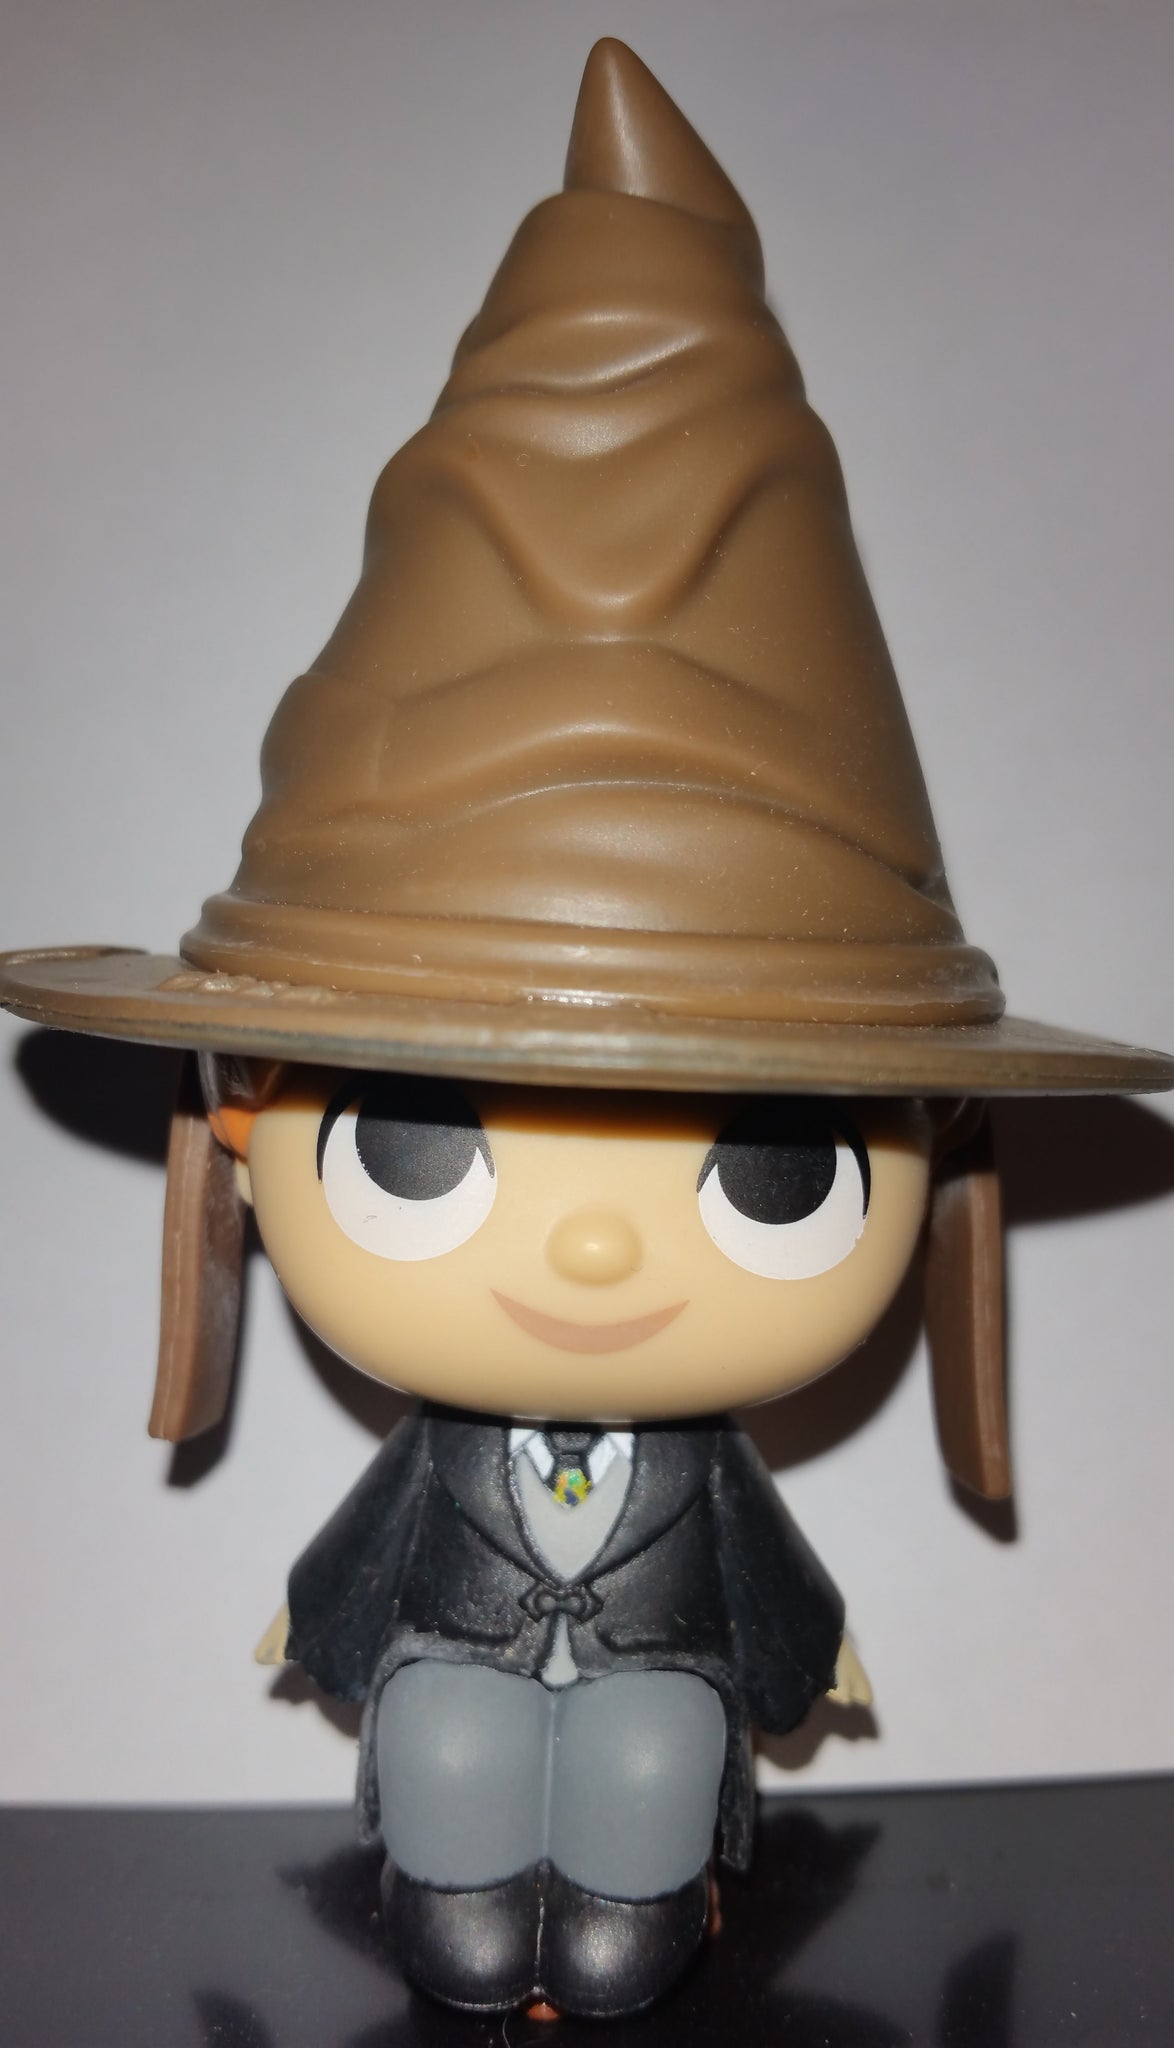 Ron with Sorting Hat Funko Mystery Minis